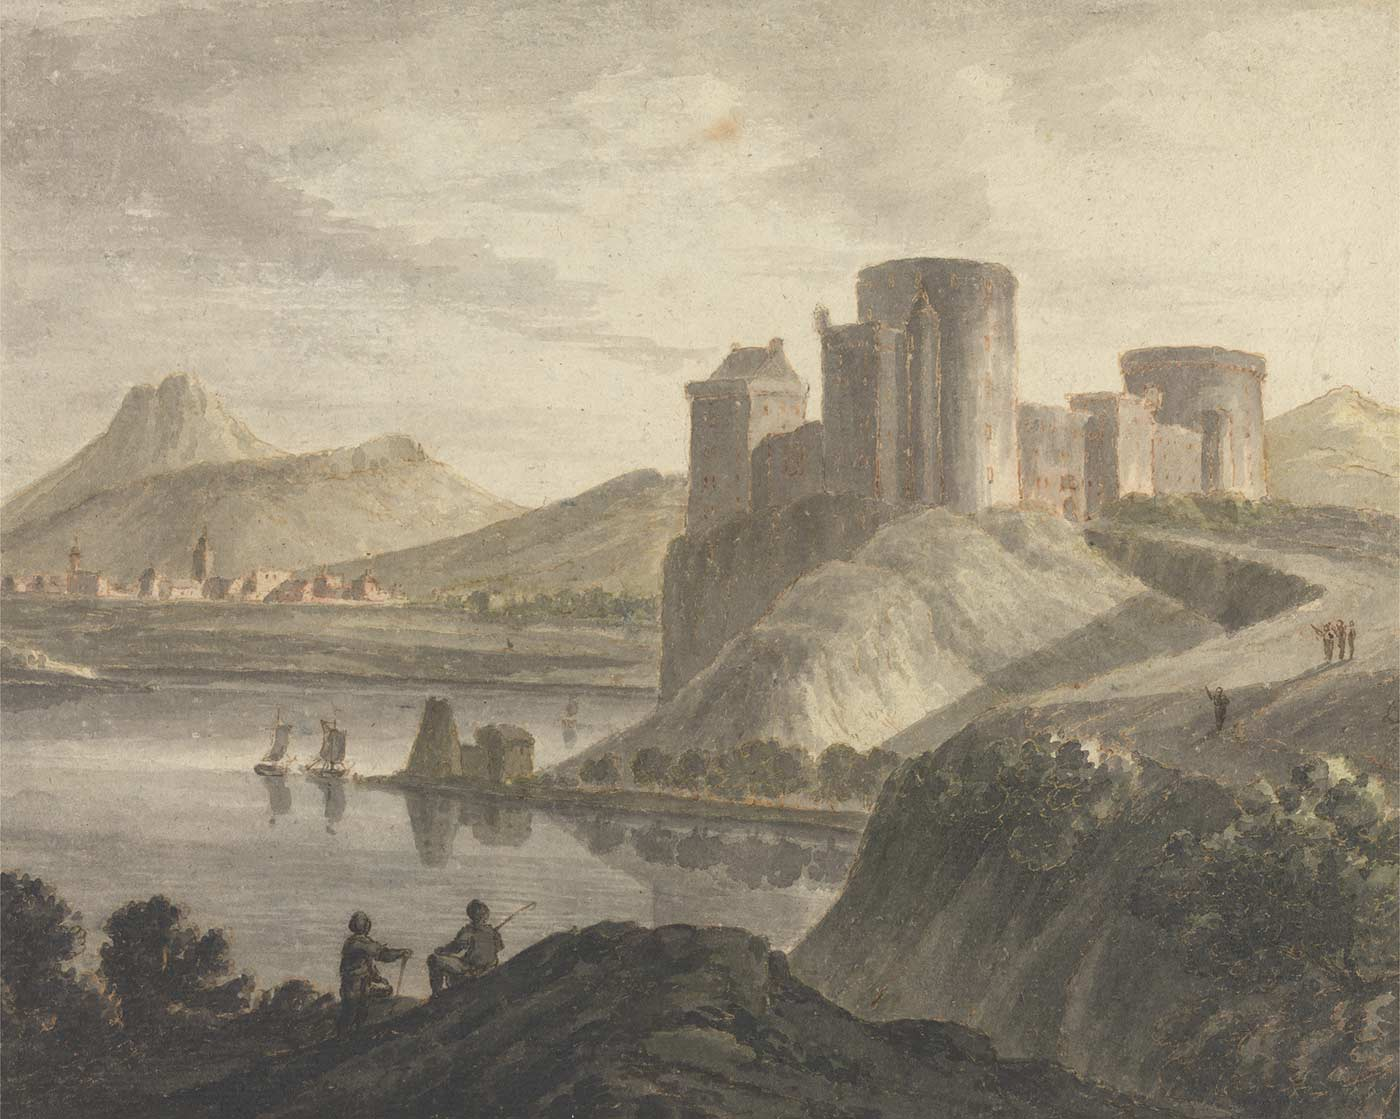 Castle with Figures in a Classical Landscape, by Robert Adam, 1728-1792.